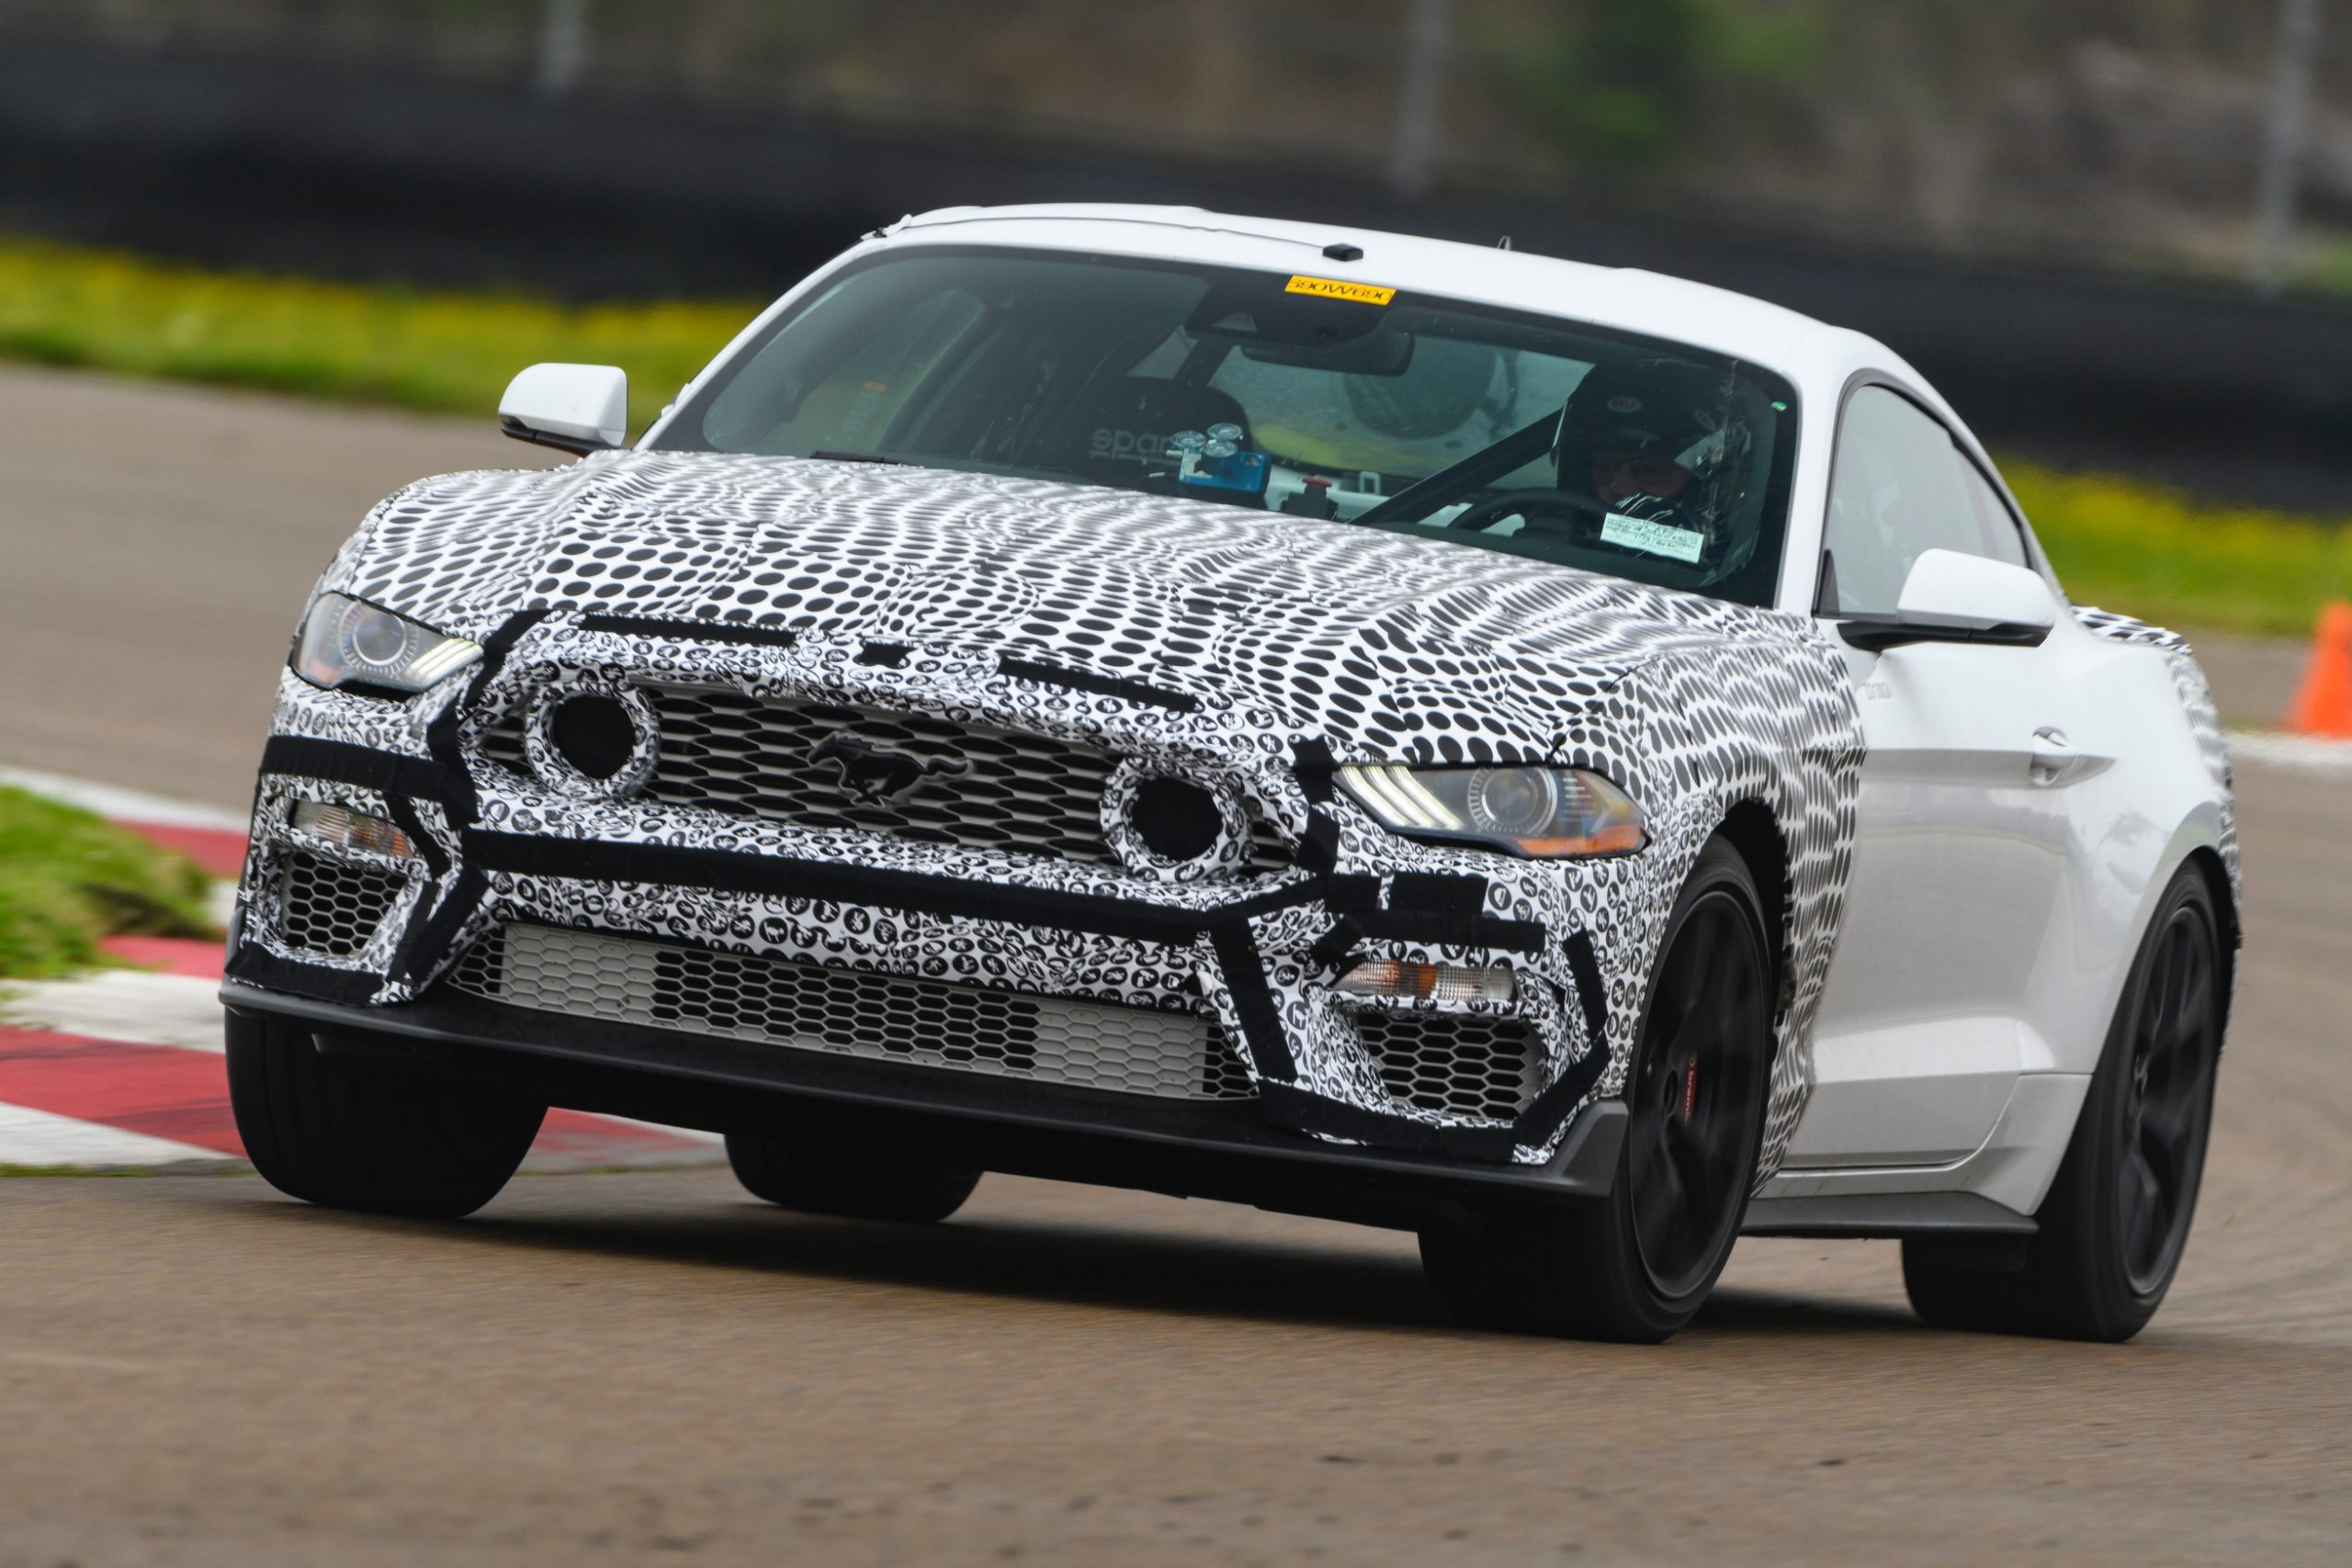 2021 Mustang Mach 1 Front Three-Quarter On Track